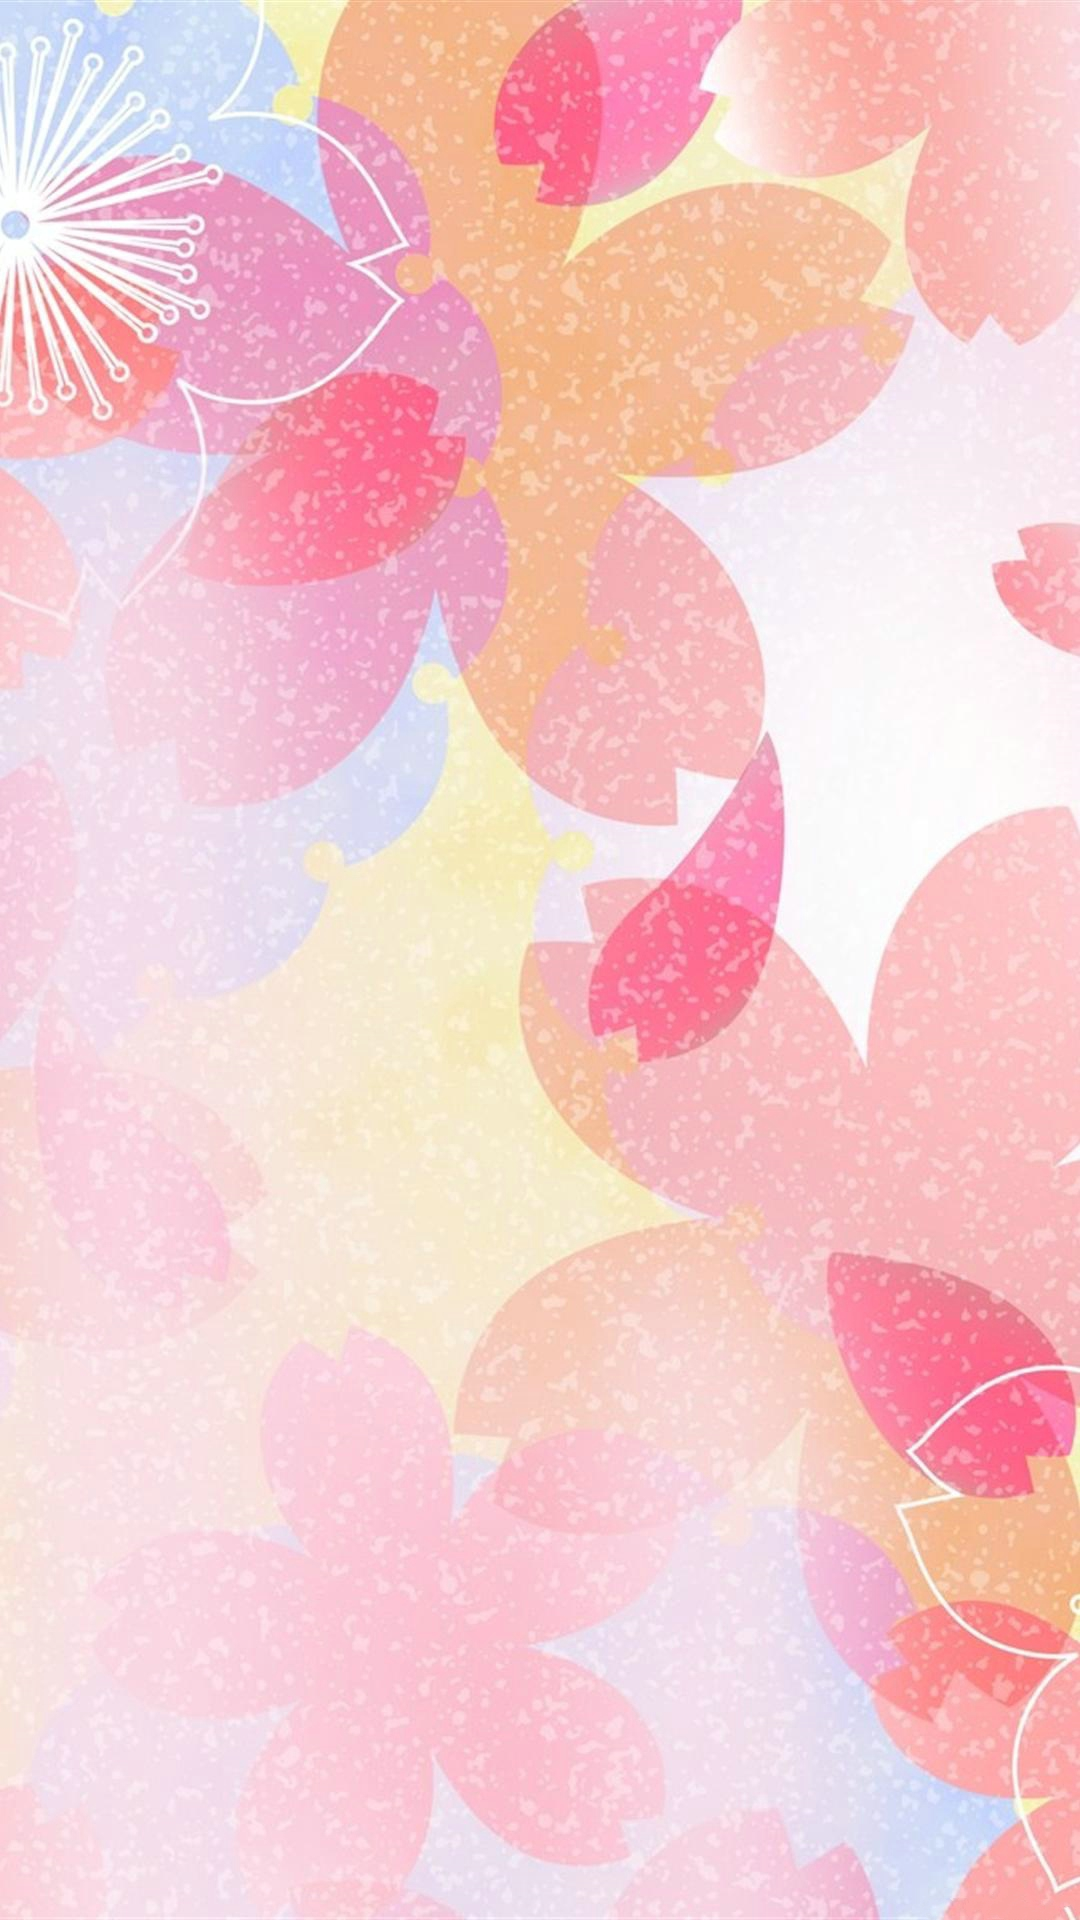 Iphone 5 Backgrounds Pink Cool Pink iPhon...